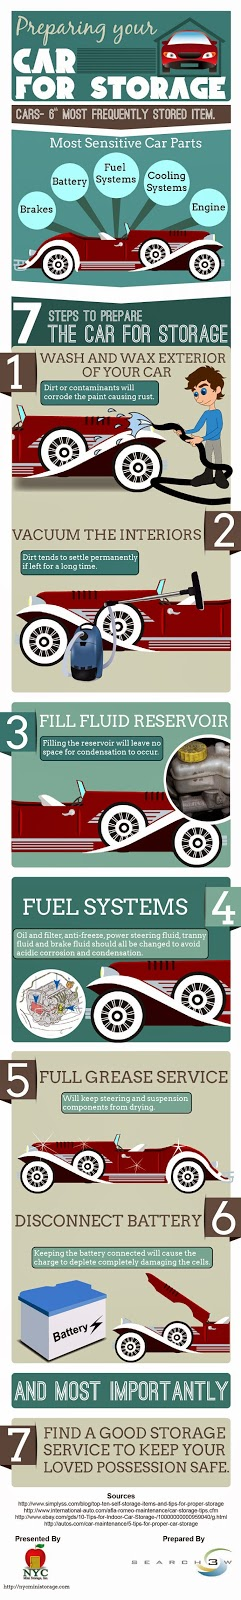 Preparing Your Car For Storage Infographic Storage Ny